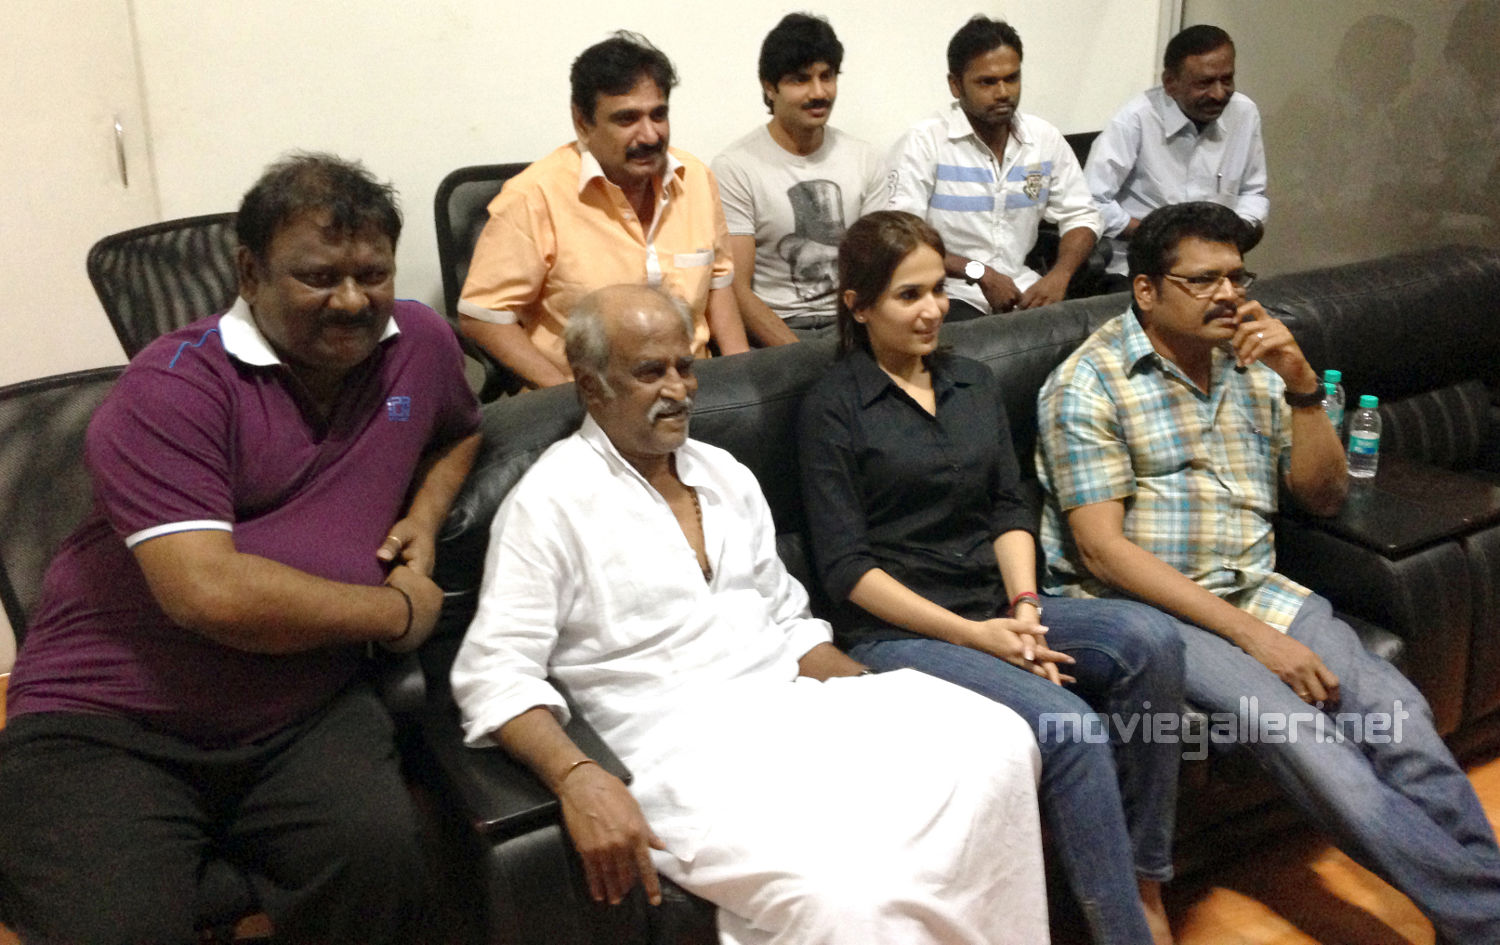 Madhesh, Rajini, Soundarya, KS Ravikumar at Kochadaiyaan Movie Shooting Spot in London Photos